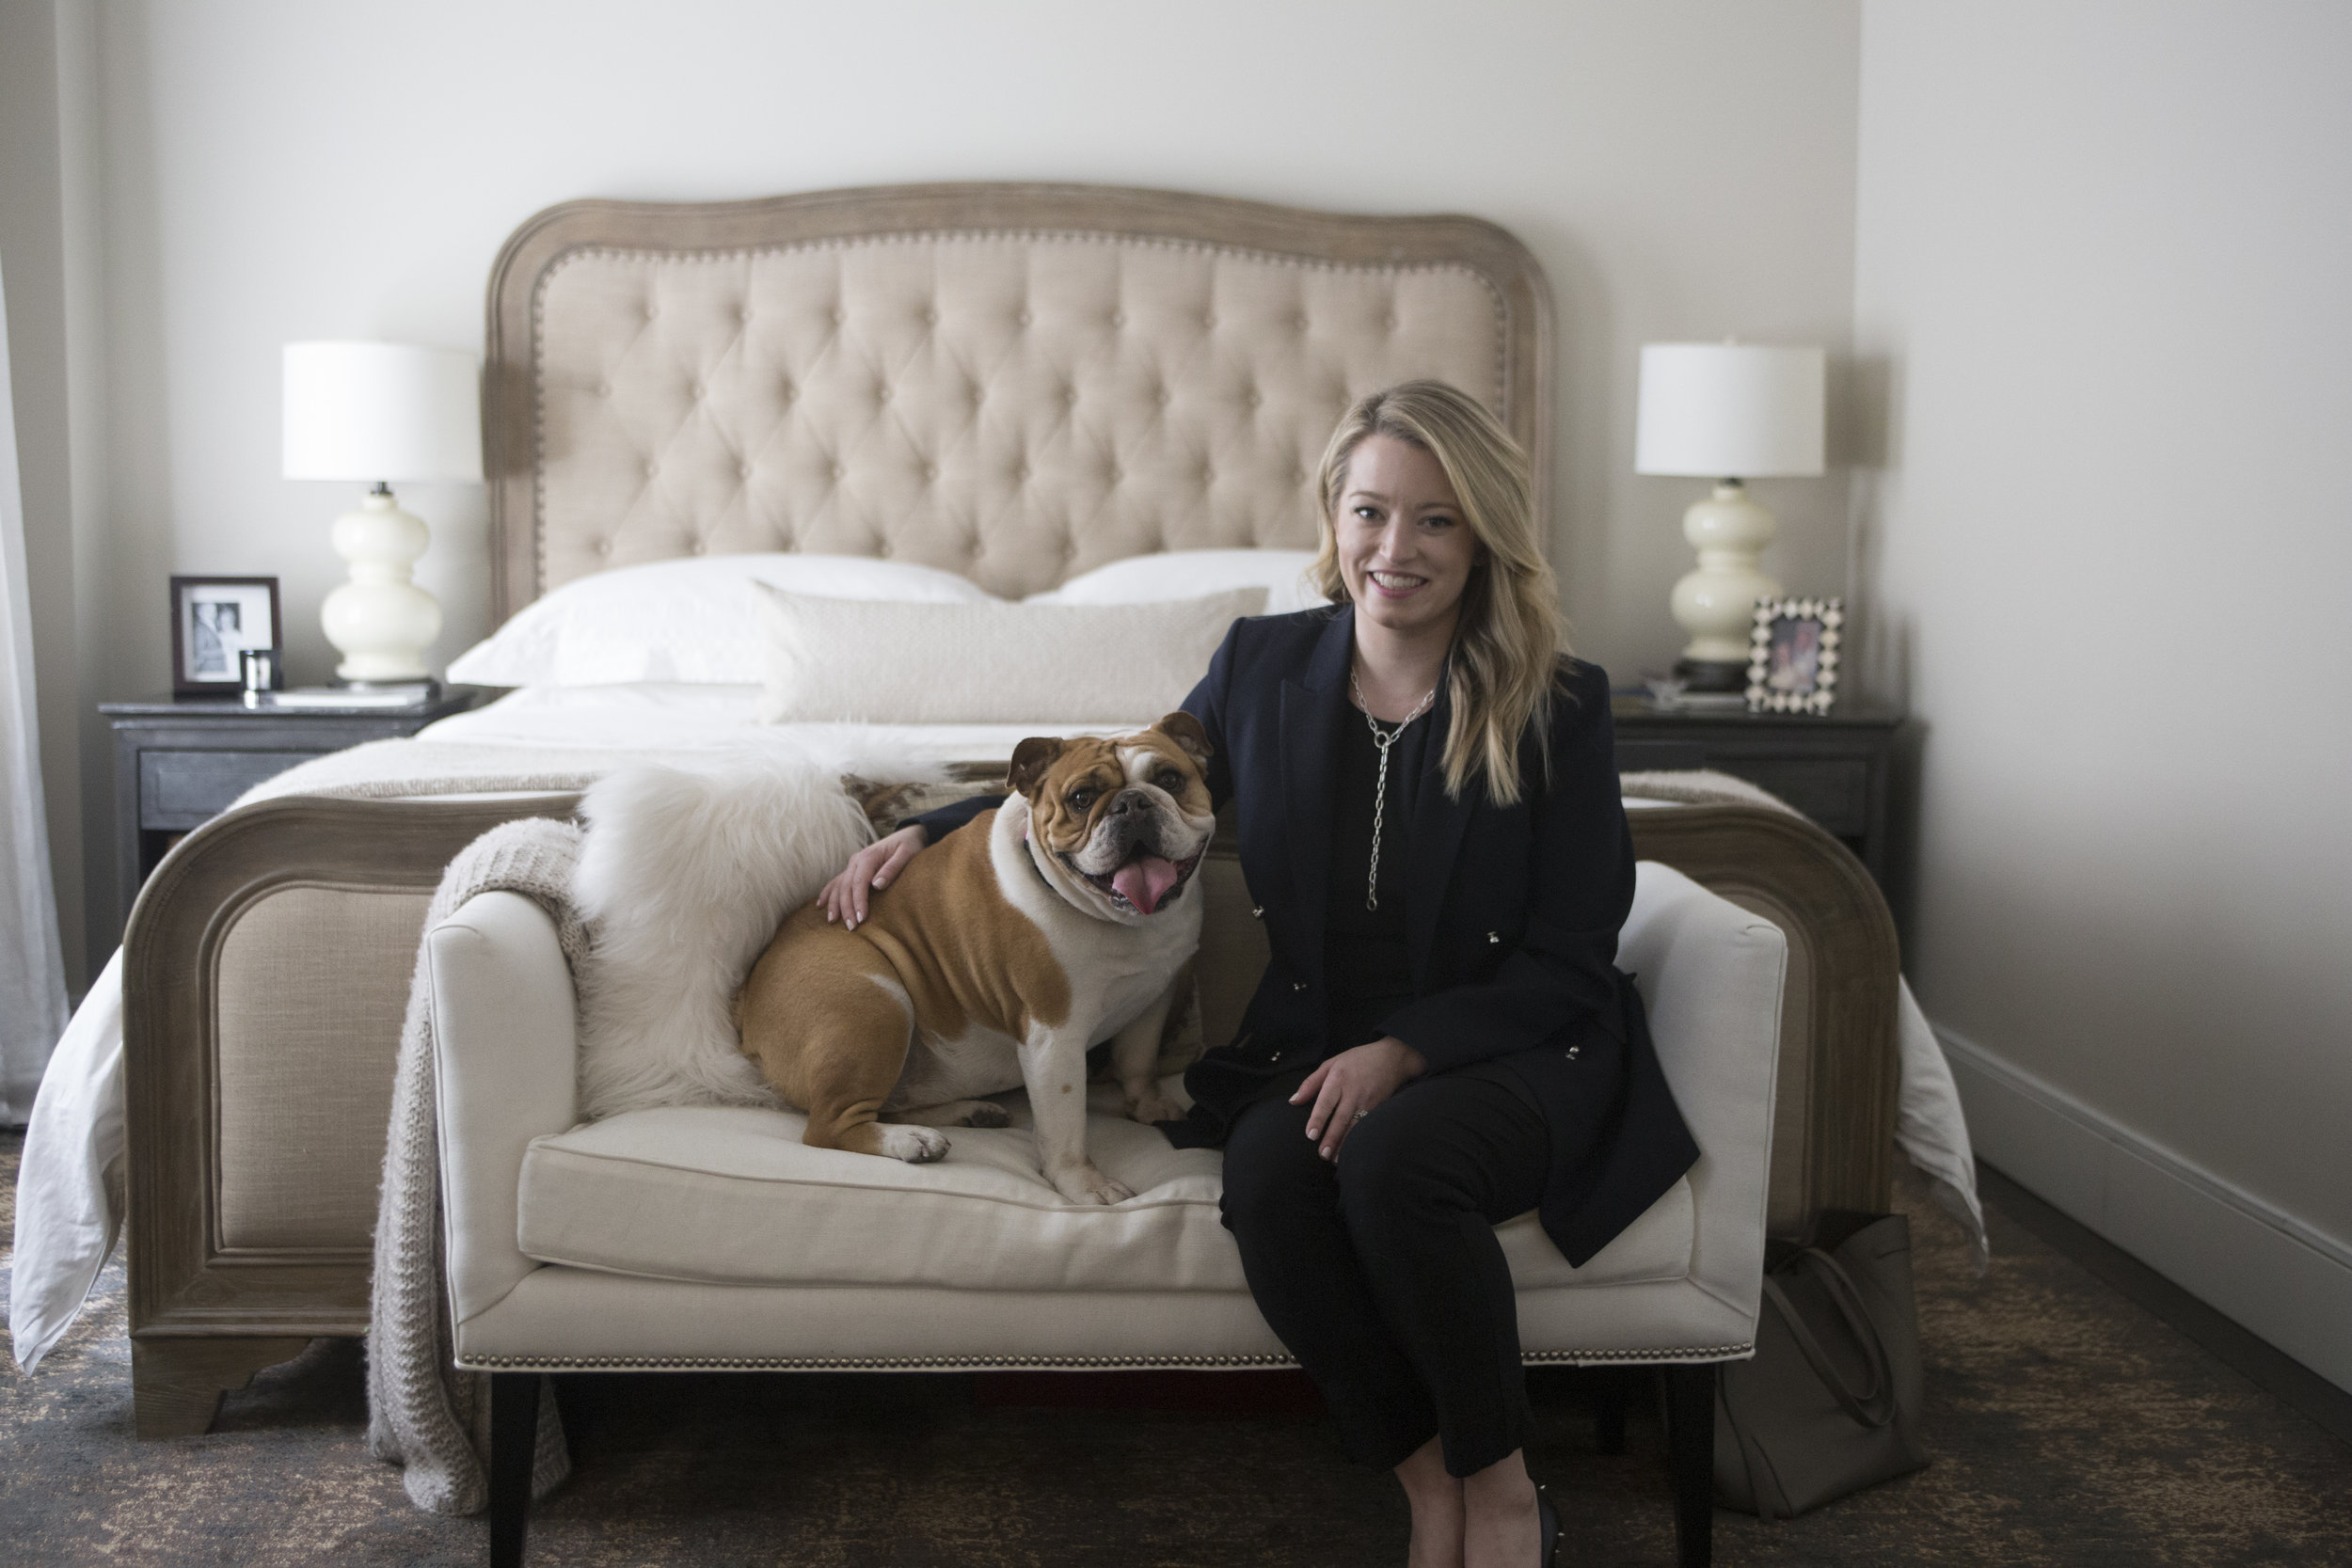 Interested in One Bleecker? - Learn more about our company and founder, Allie McMunn.